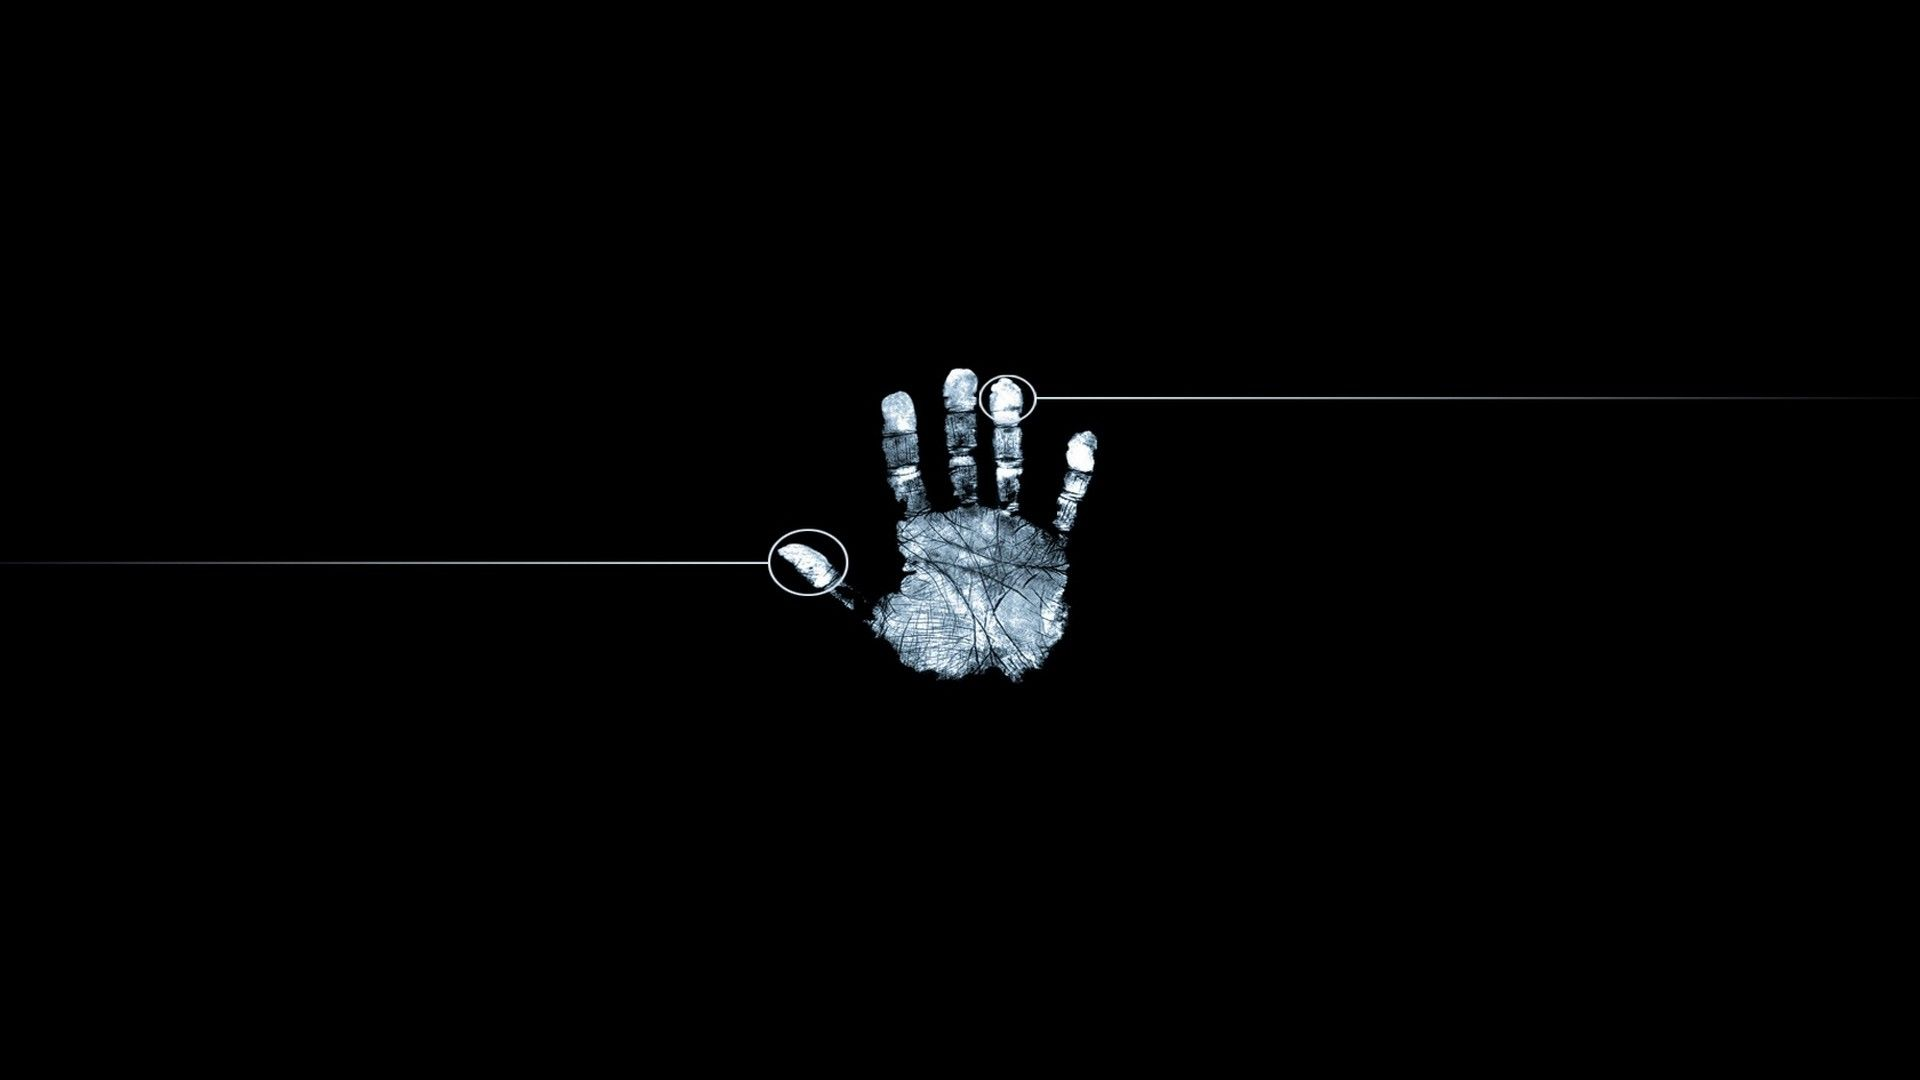 Minimalism Black Background Fingerprints White Abstract Hands Fingers Monochrome Desktop Wallpaper Black Pure Black Wallpaper Hd Dark Wallpapers